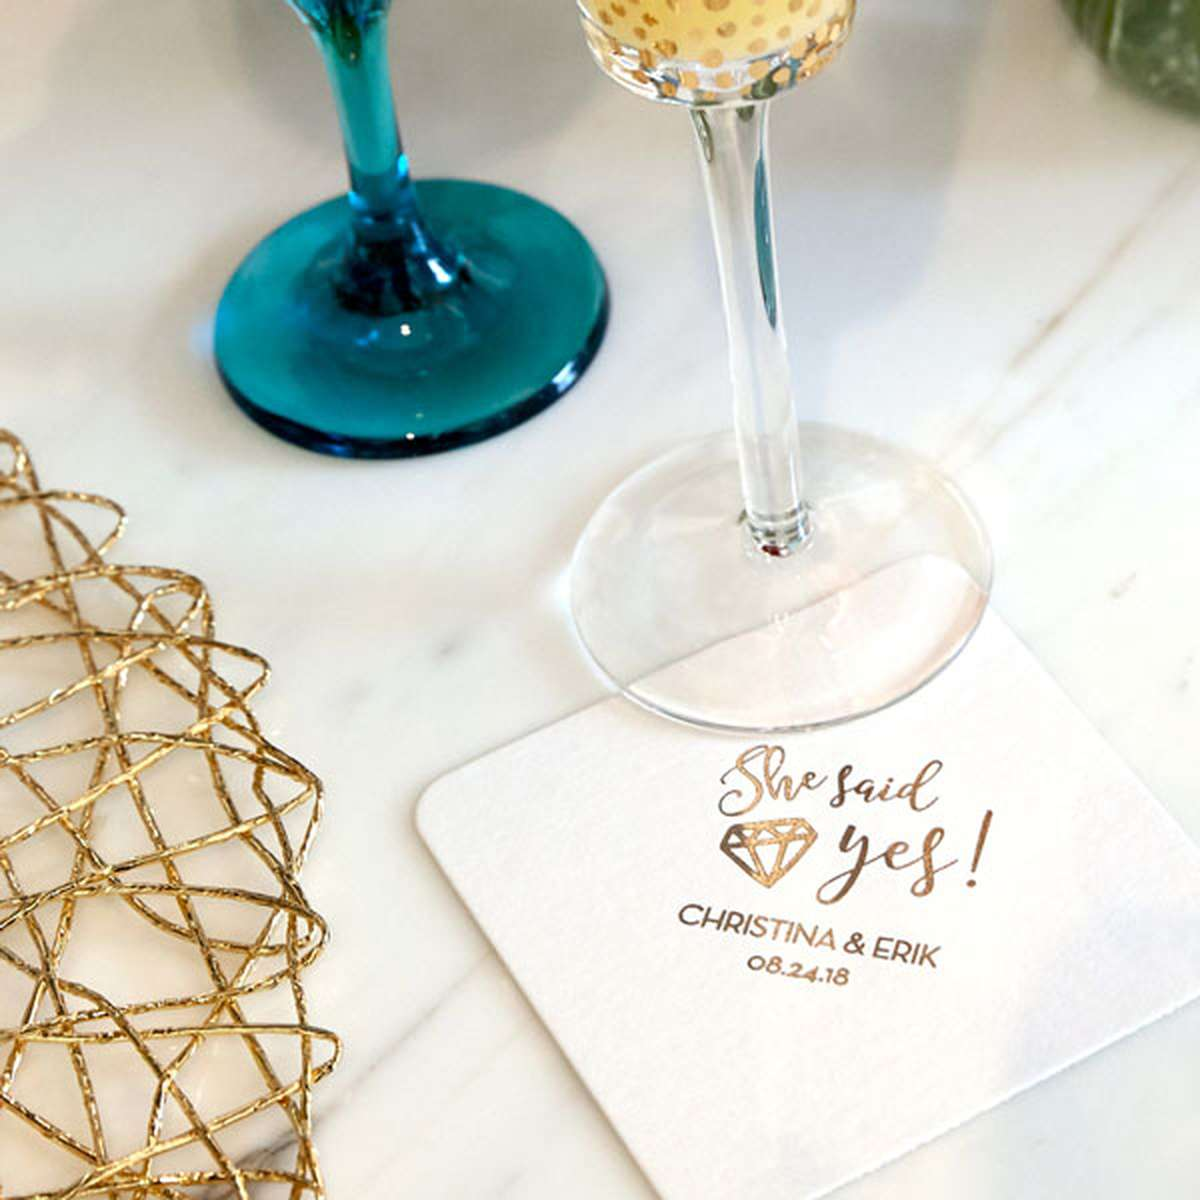 Engagement Party Ideas custom coasters